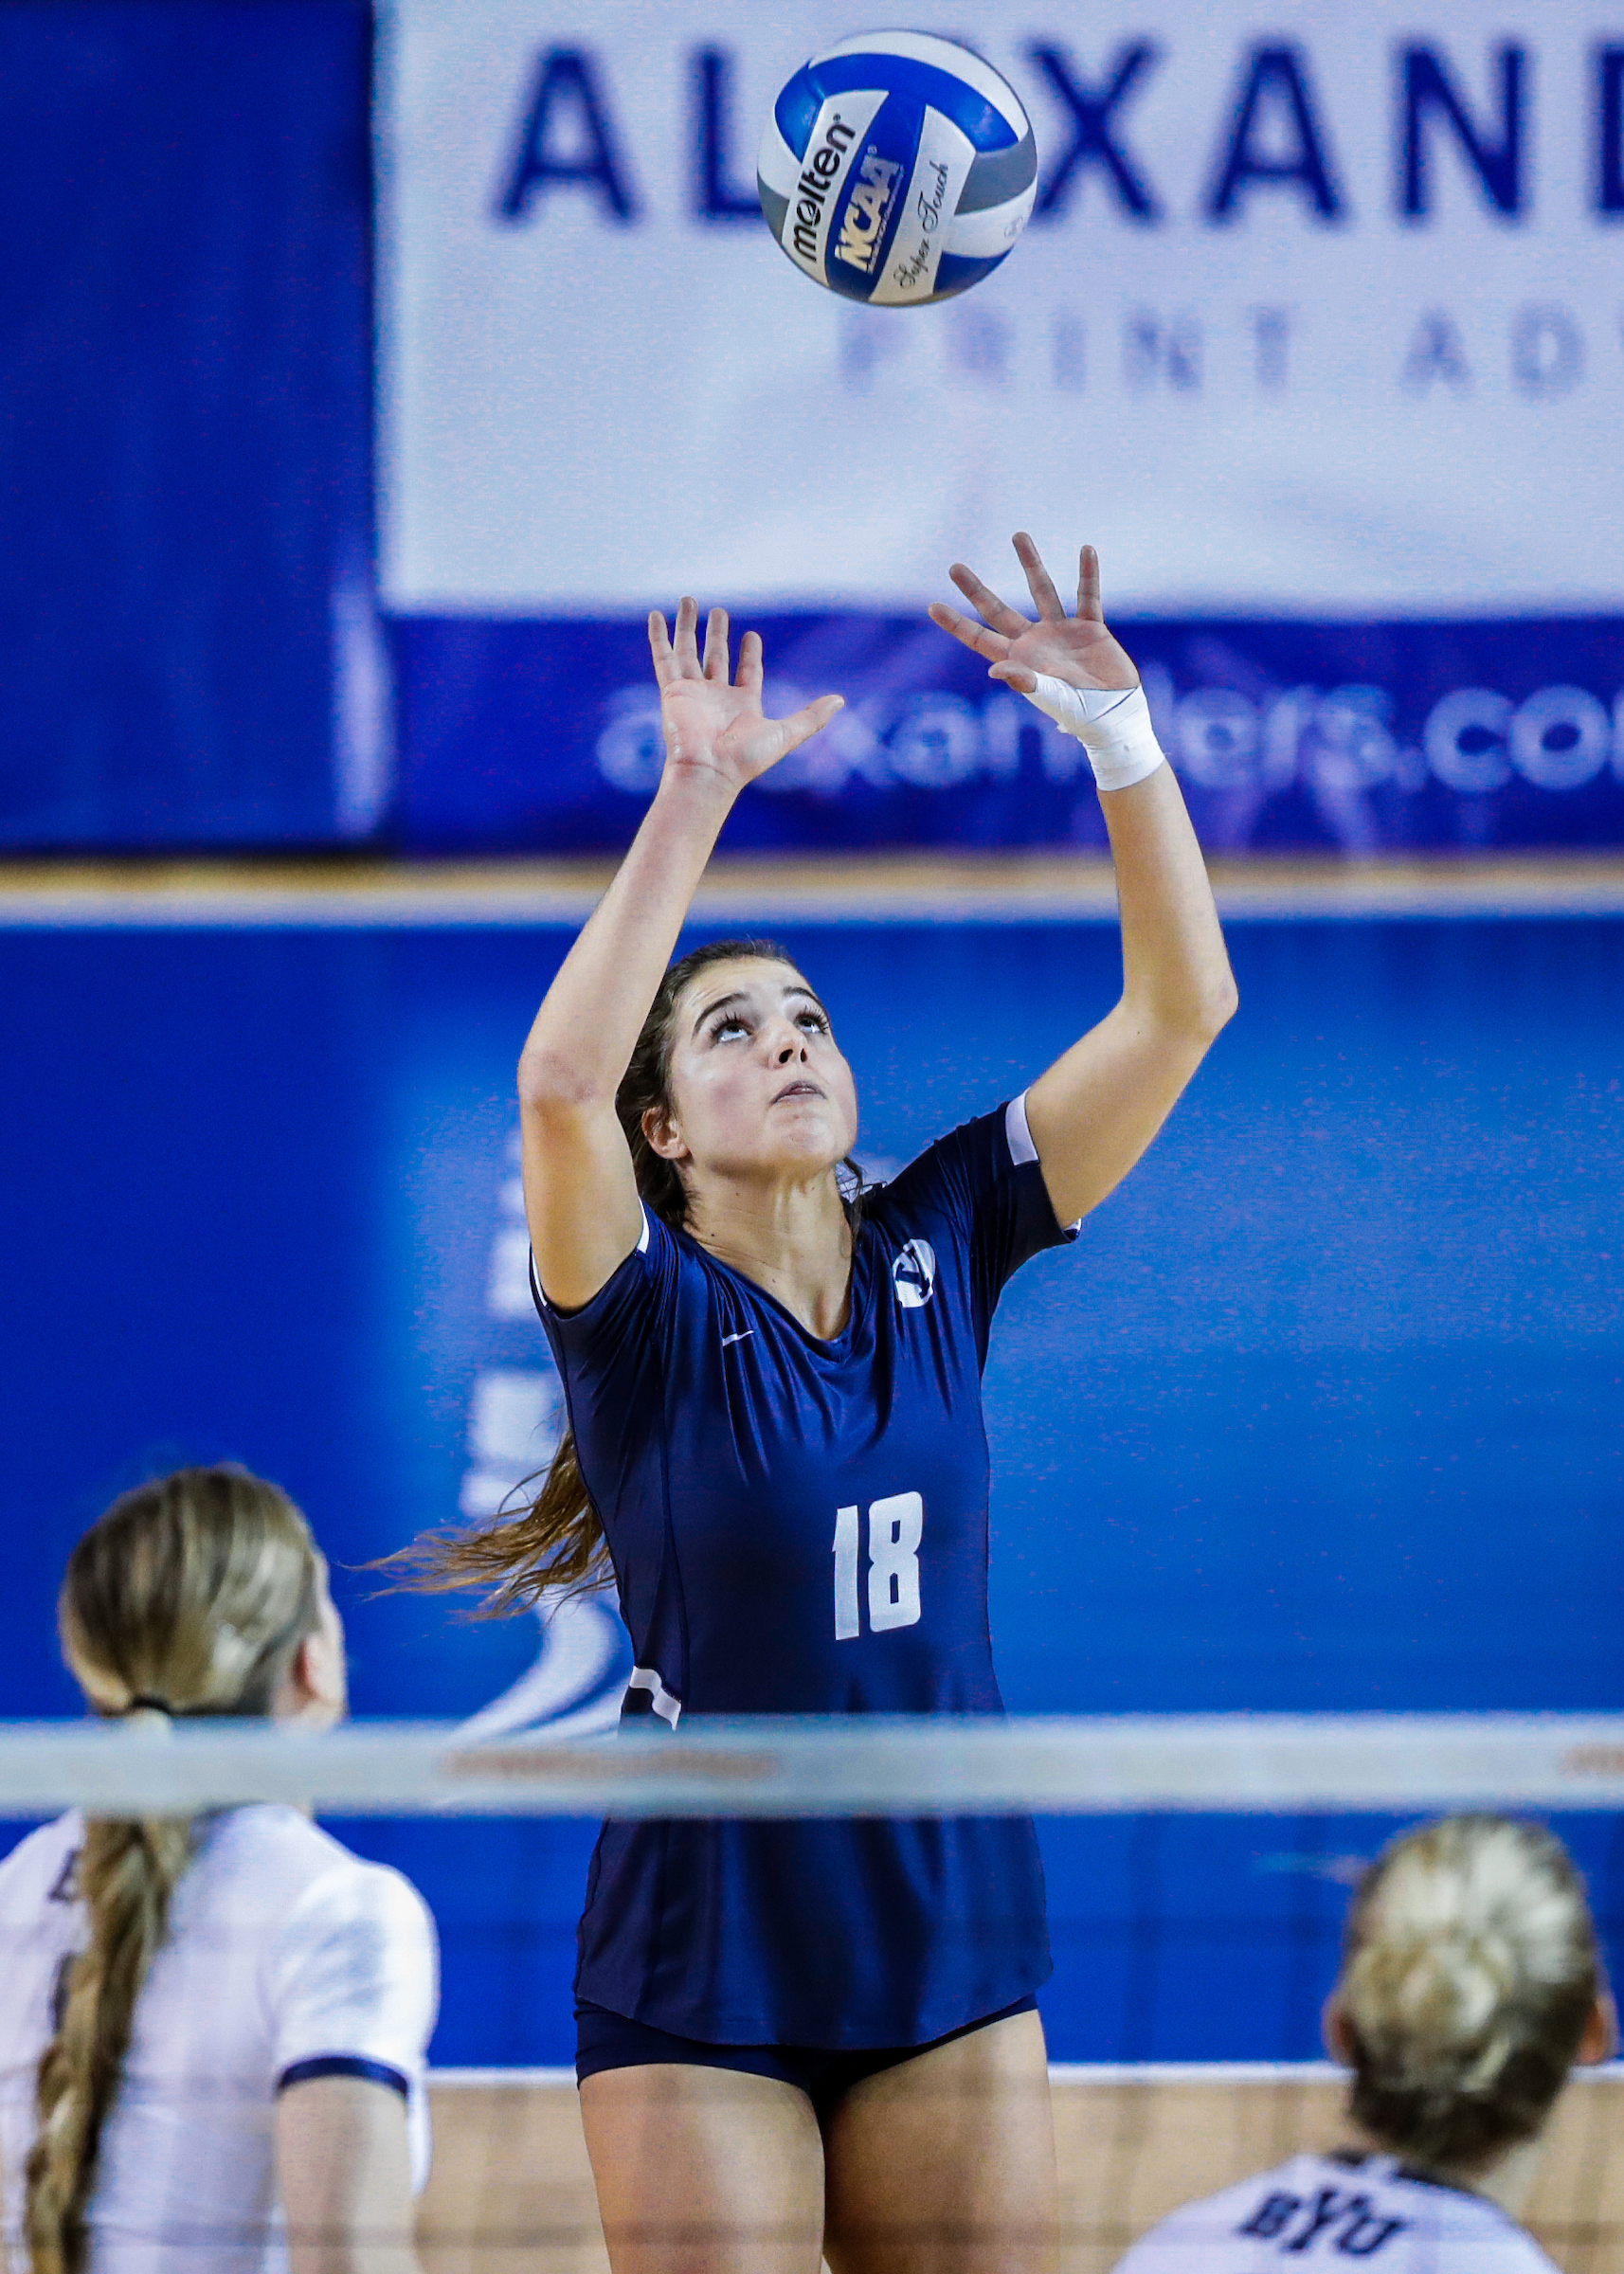 All-American Mary Lake helped the BYU Women's Volleyball Team reach the 2018 NCAA Final Four. She also plays for Team USA.